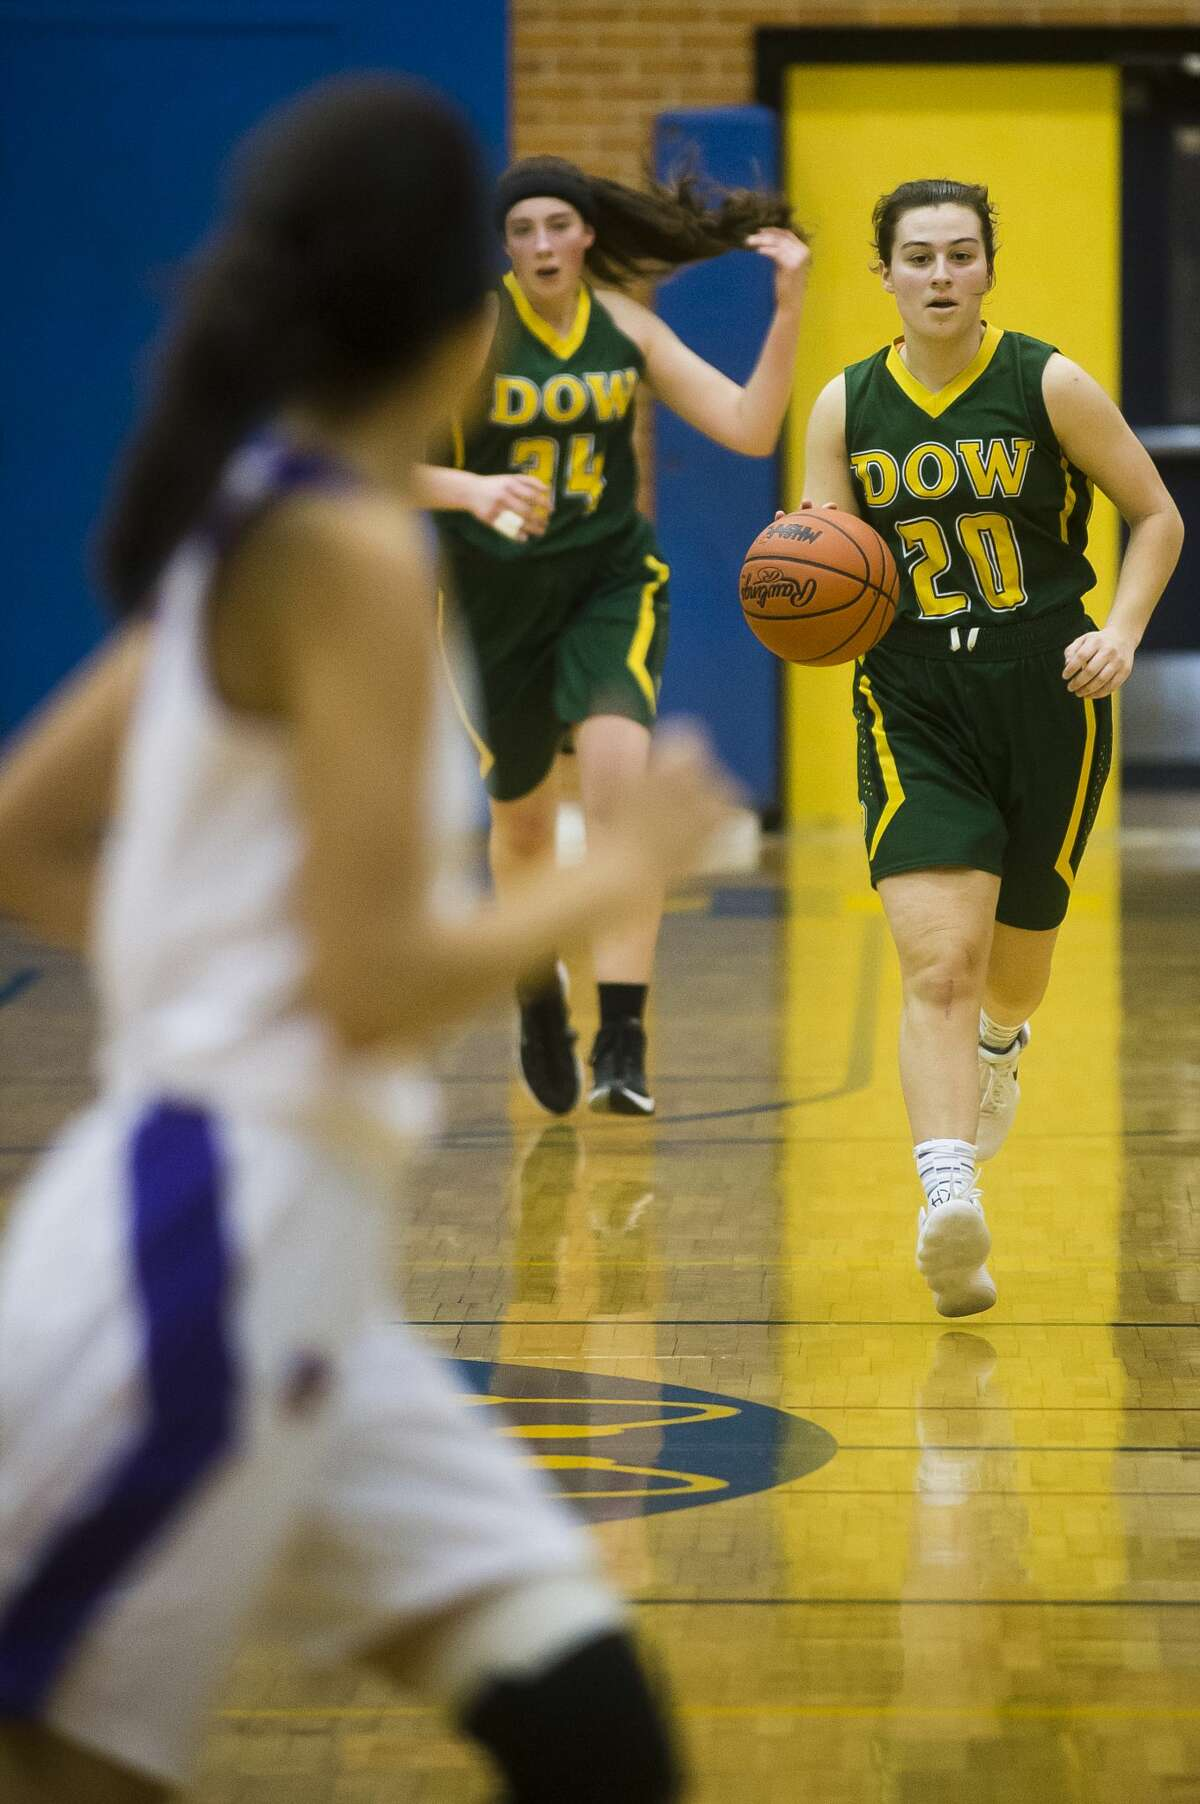 Dow junior Maizie Taylor dribbles down the court while sophomore Alyssa Keptner follows behind her during the Chargers' district semifinals game against Bay City Central on Wednesday, Feb. 28, 2018 at Midland High School. (Katy Kildee/kkildee@mdn.net)